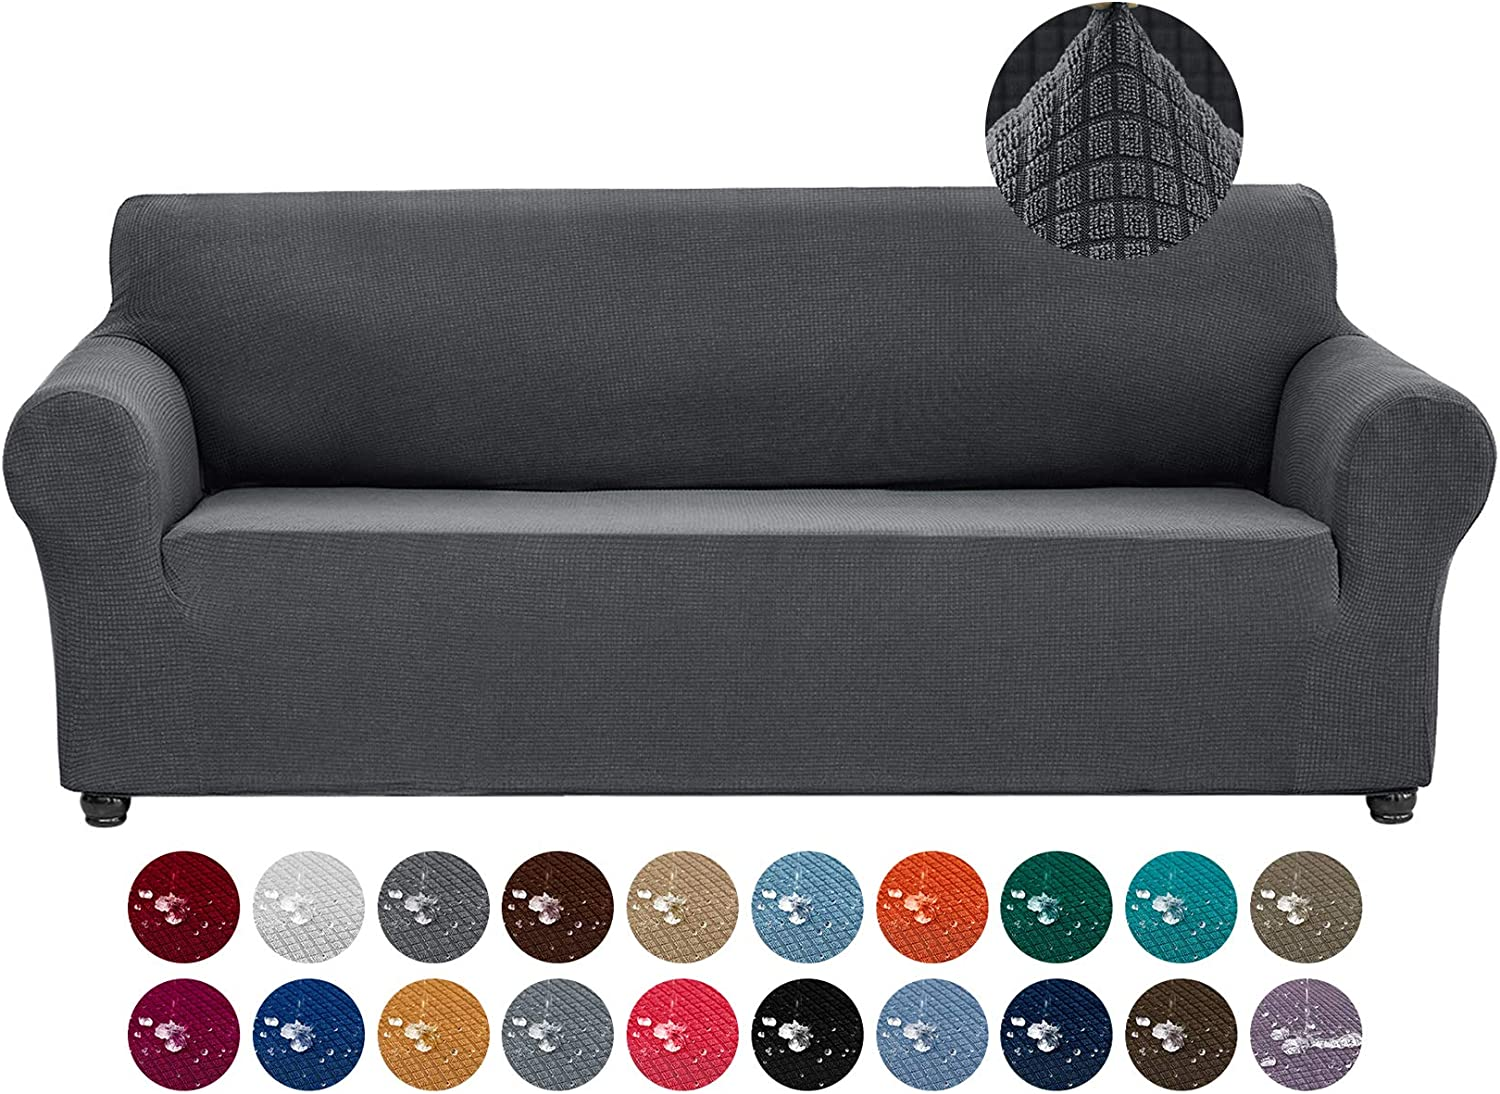 Joccun Stretch Couch Cover Slipcovers, 1-Piece Water Repellent Sofa Covers for 3 Cushion Couch Spandex Jacquard Washable Furniture Protector Cover for Living Room,Kids,Pets(Sofa,Dark Gray)